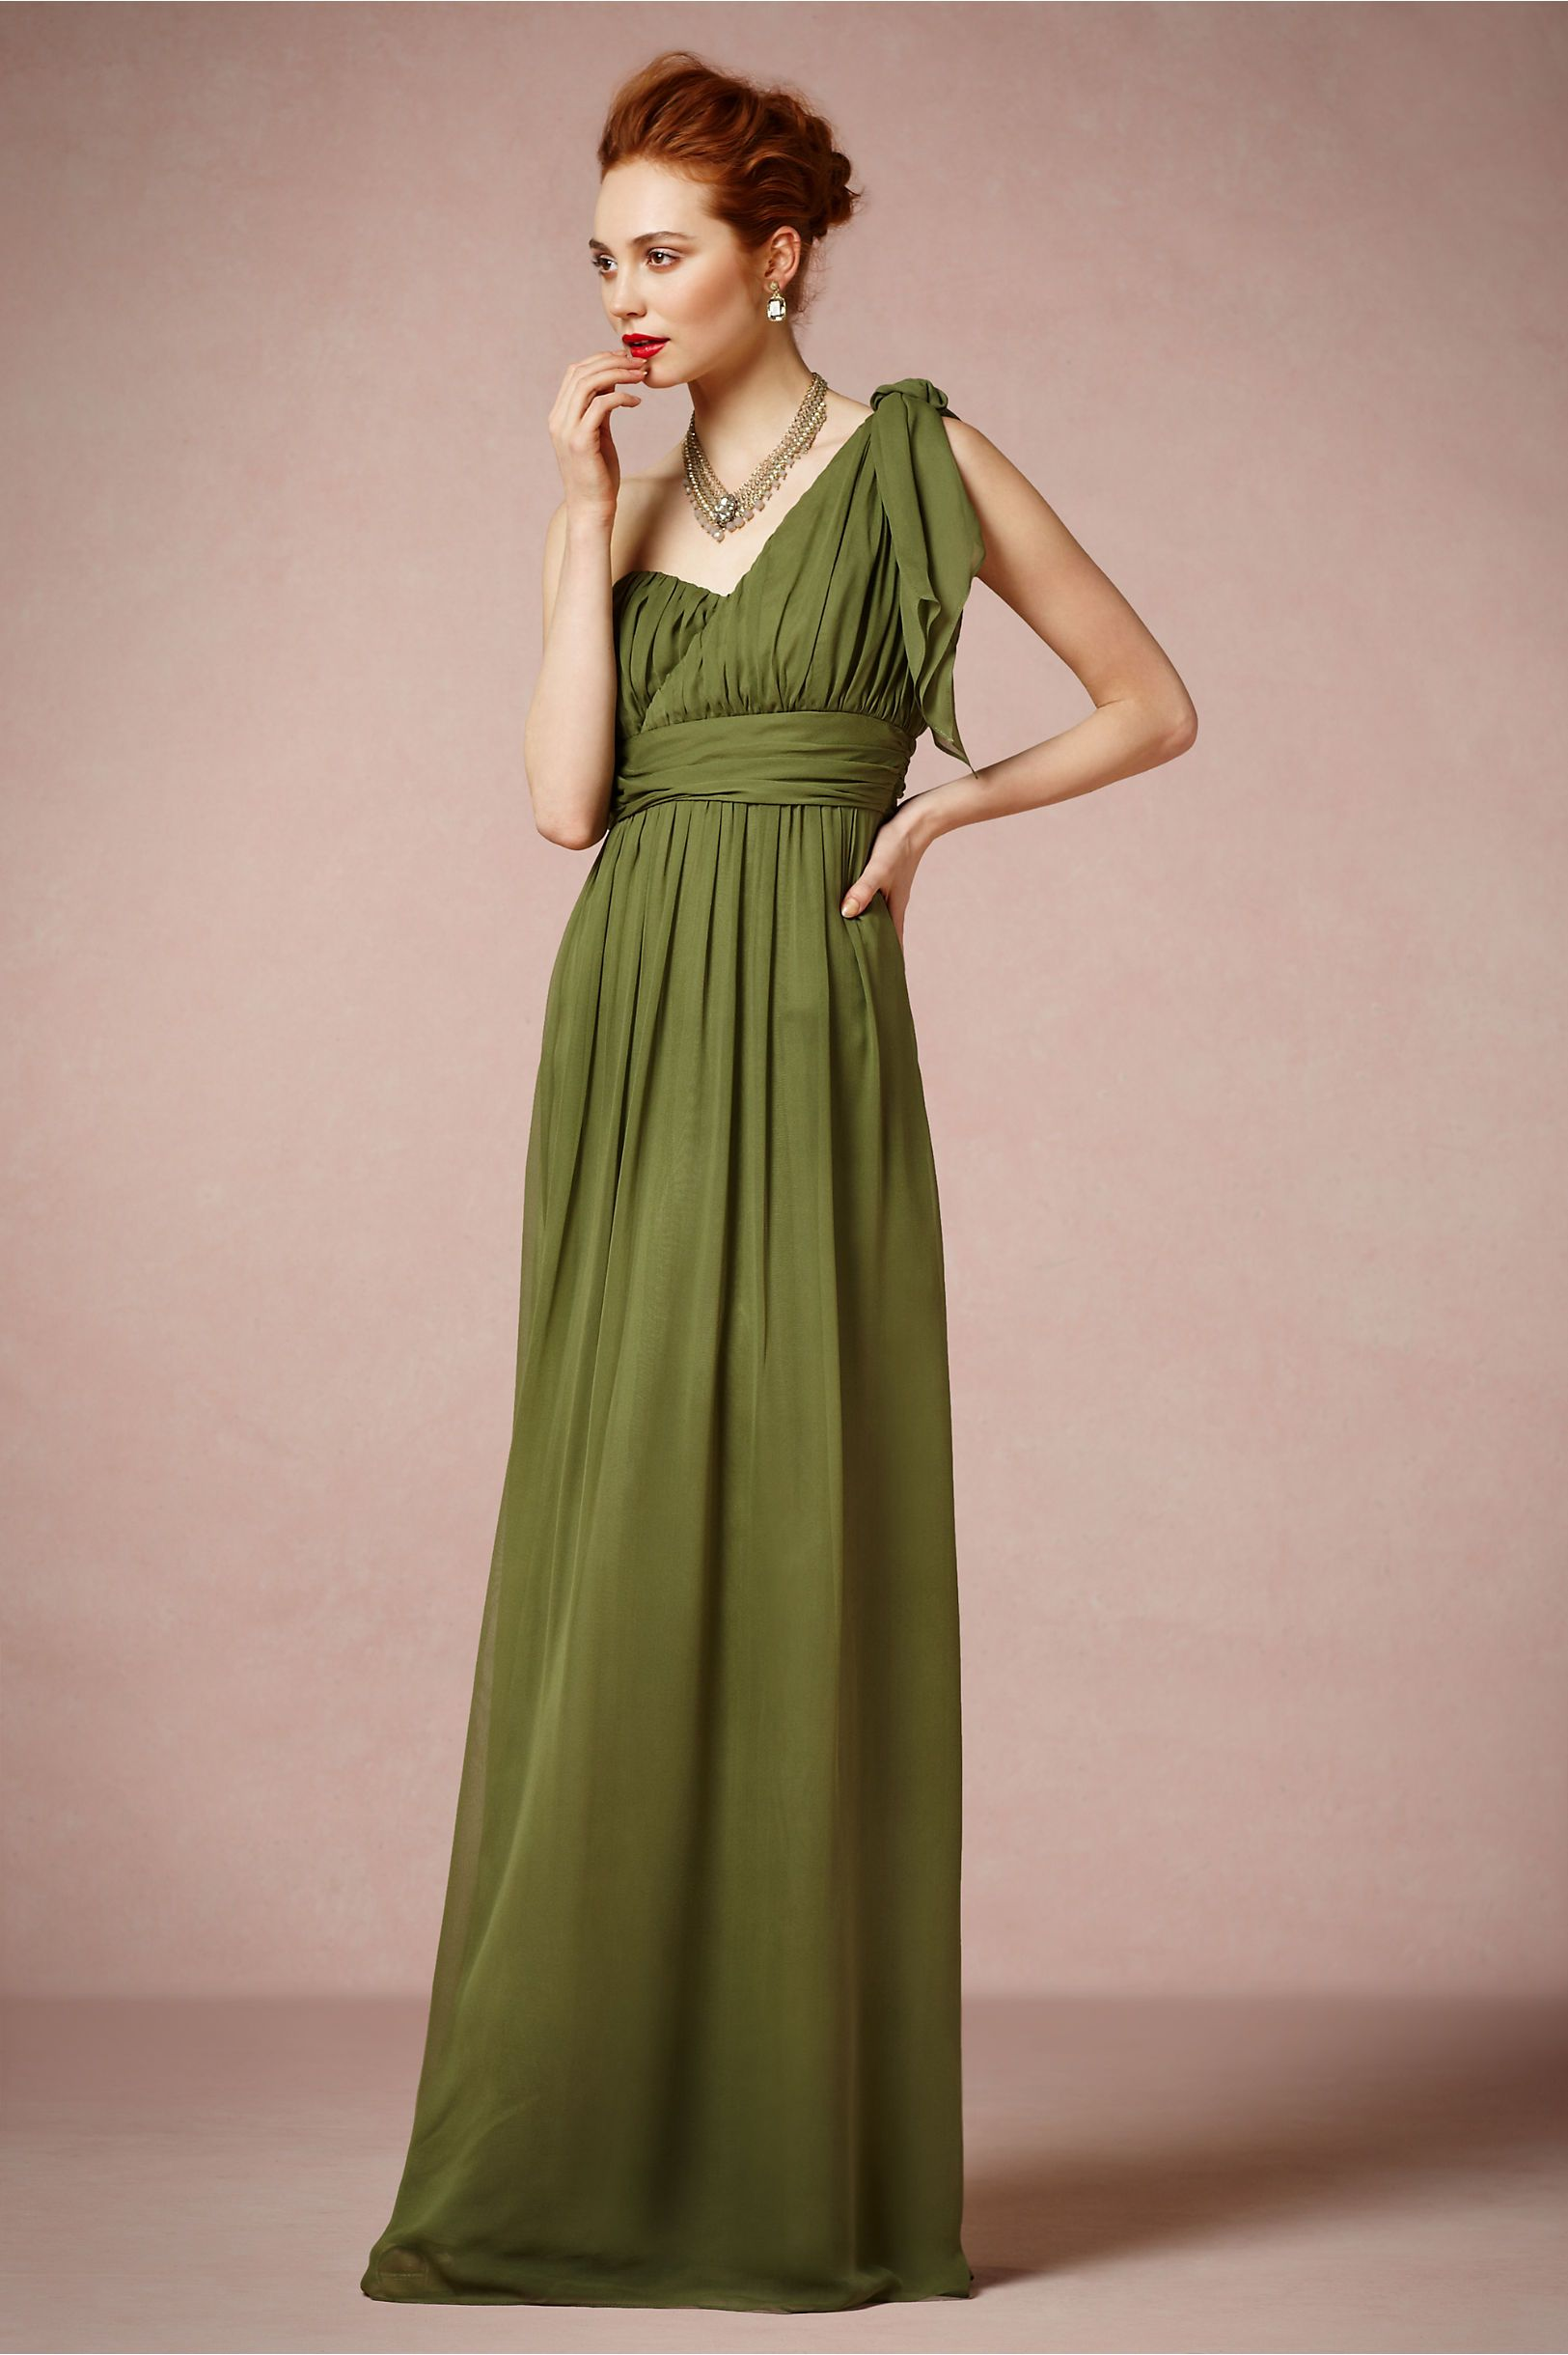 Thalia Maxi Dress in Bridesmaids & Partygoers Dresses at BHLDN ...